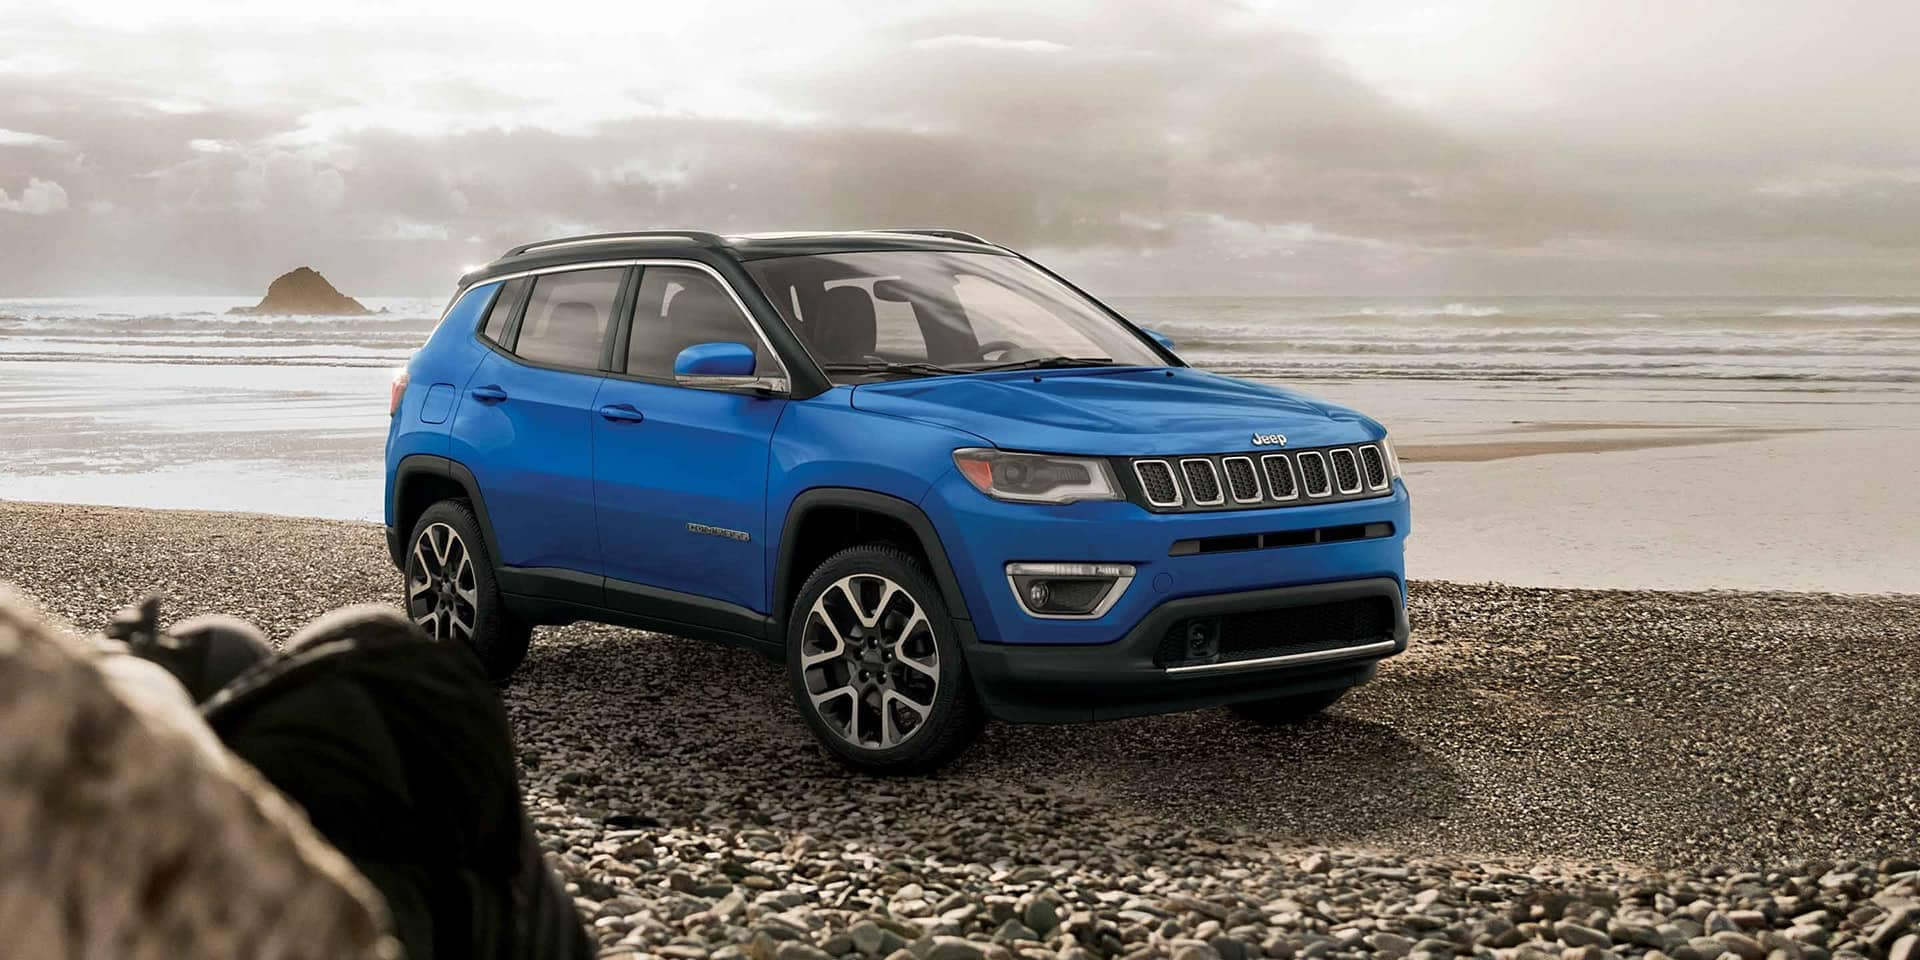 2019-Jeep-Compass-Gallery-Exterior-Laltitude-Blue-Front